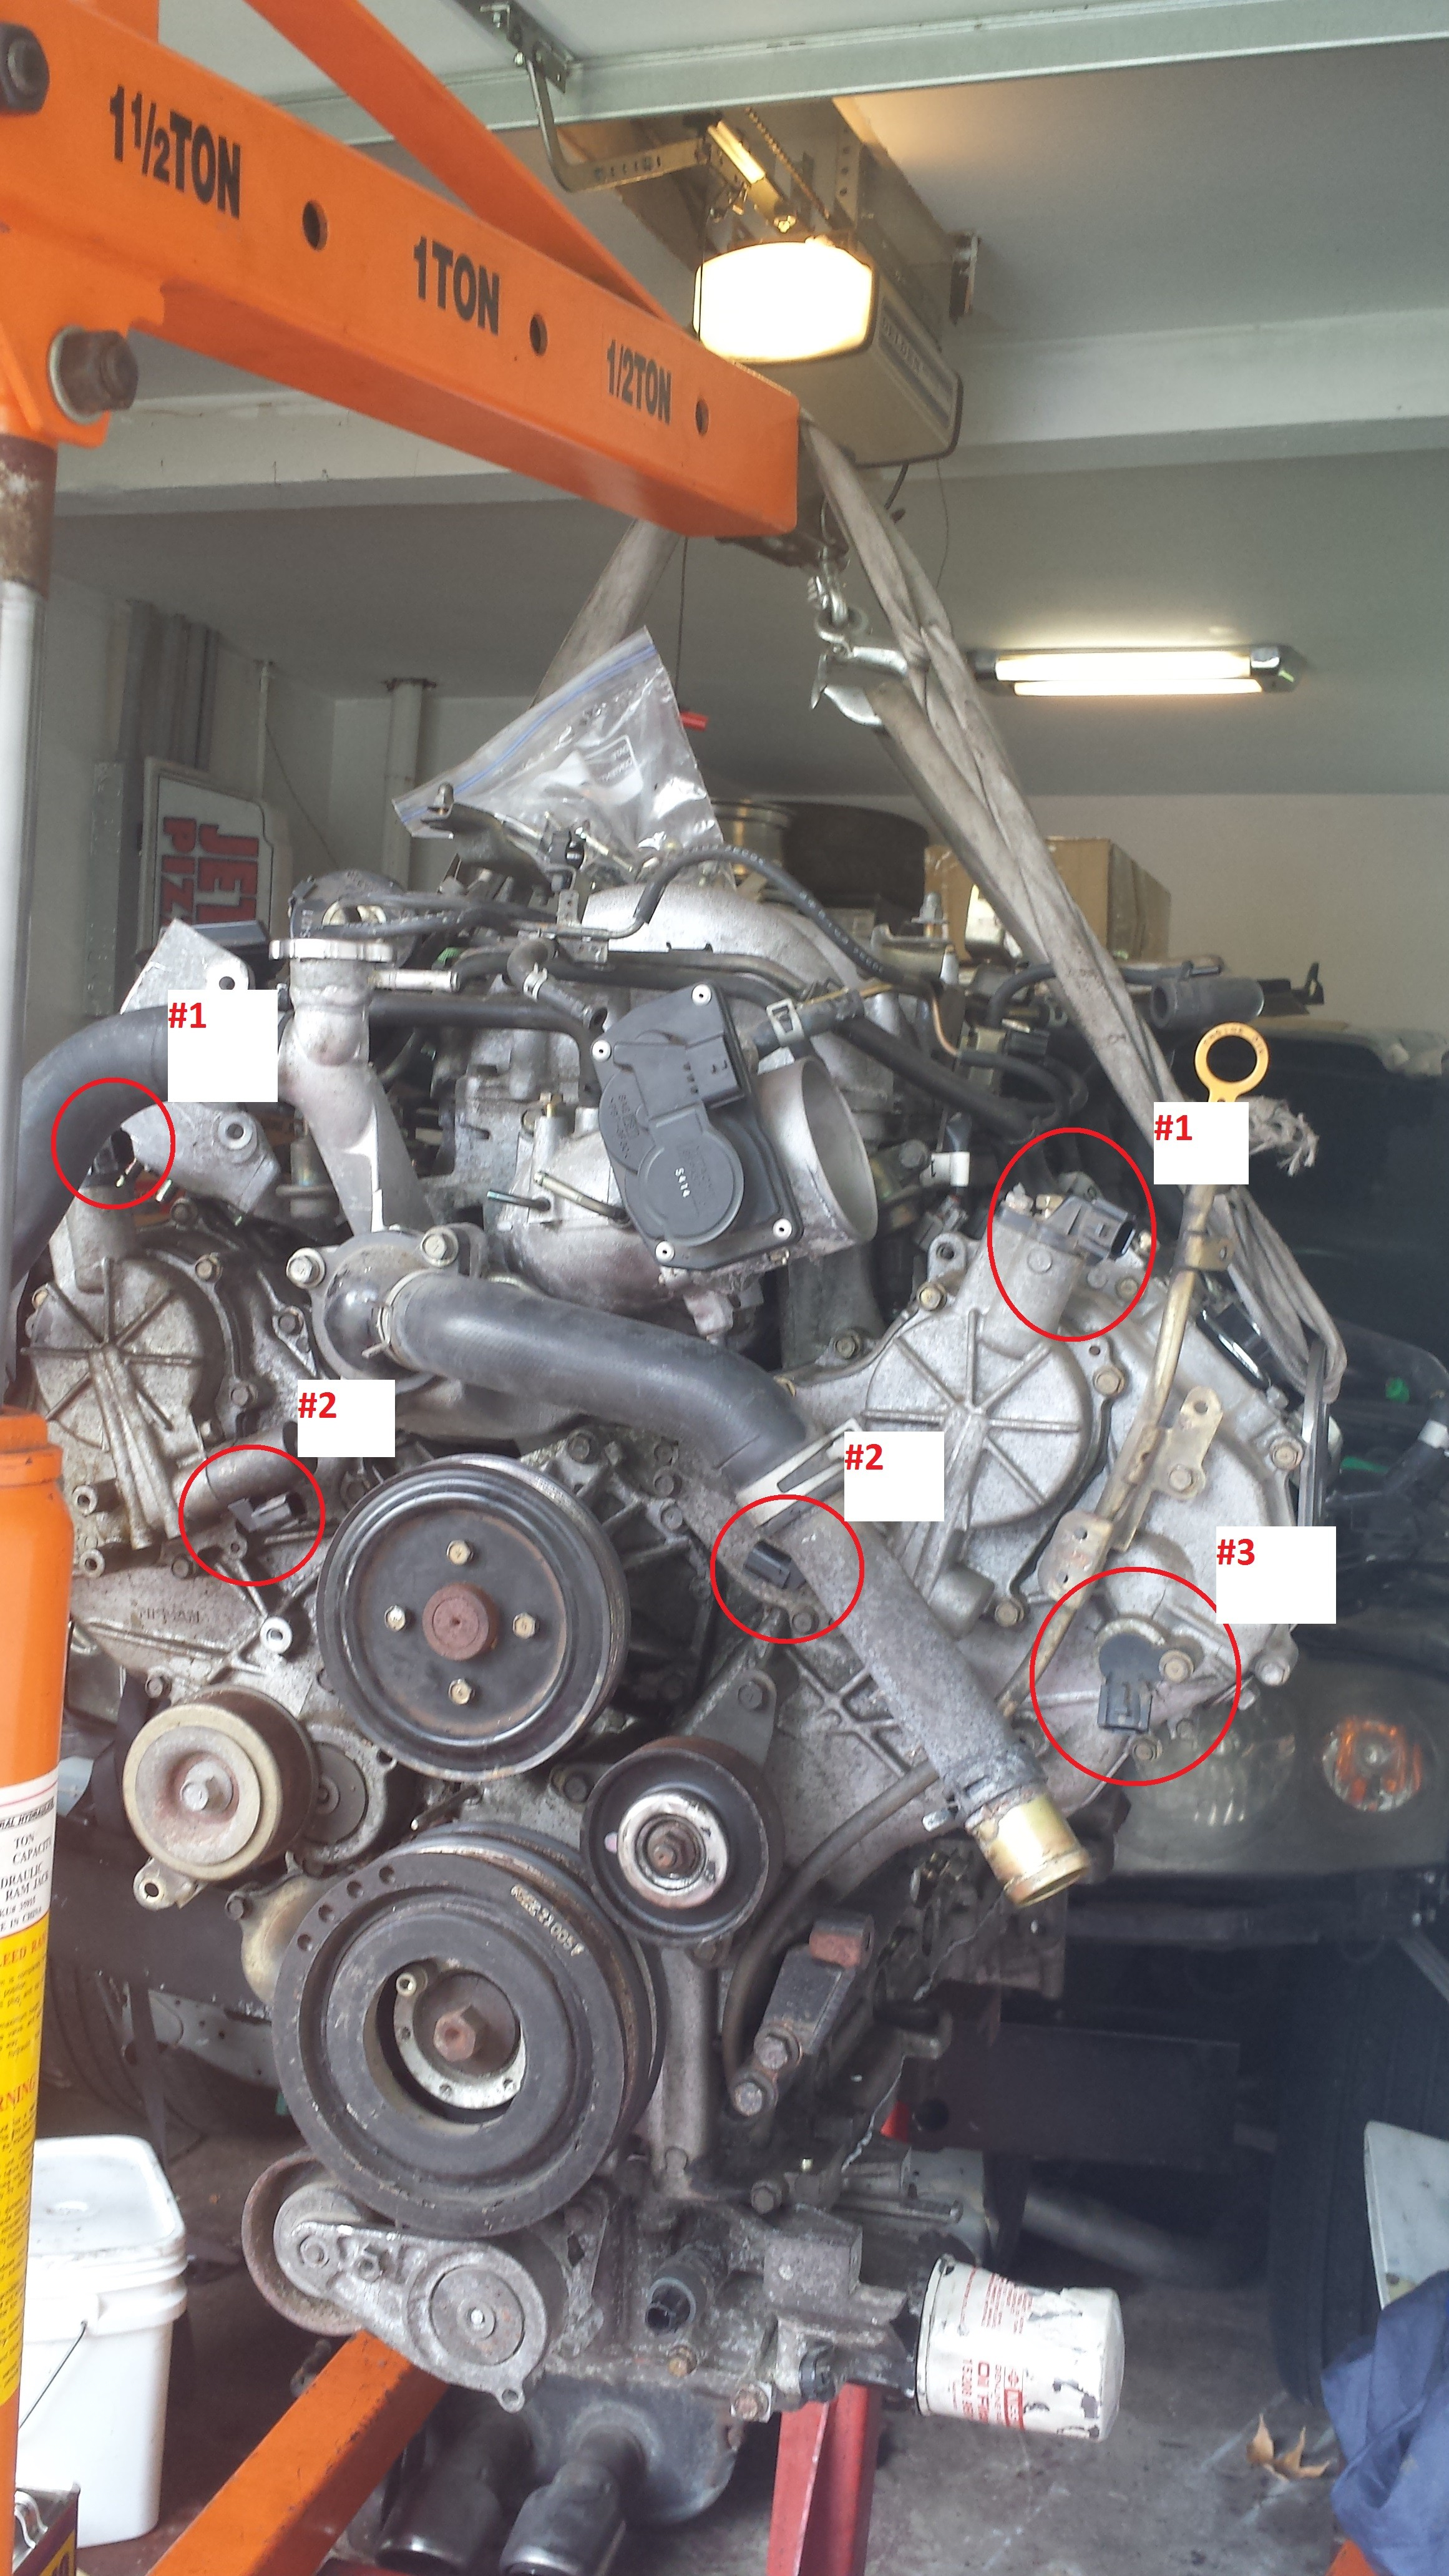 2003 Infinity Po340 Video Howto] Infiniti V8 P0340 & P0335 Camshaft and